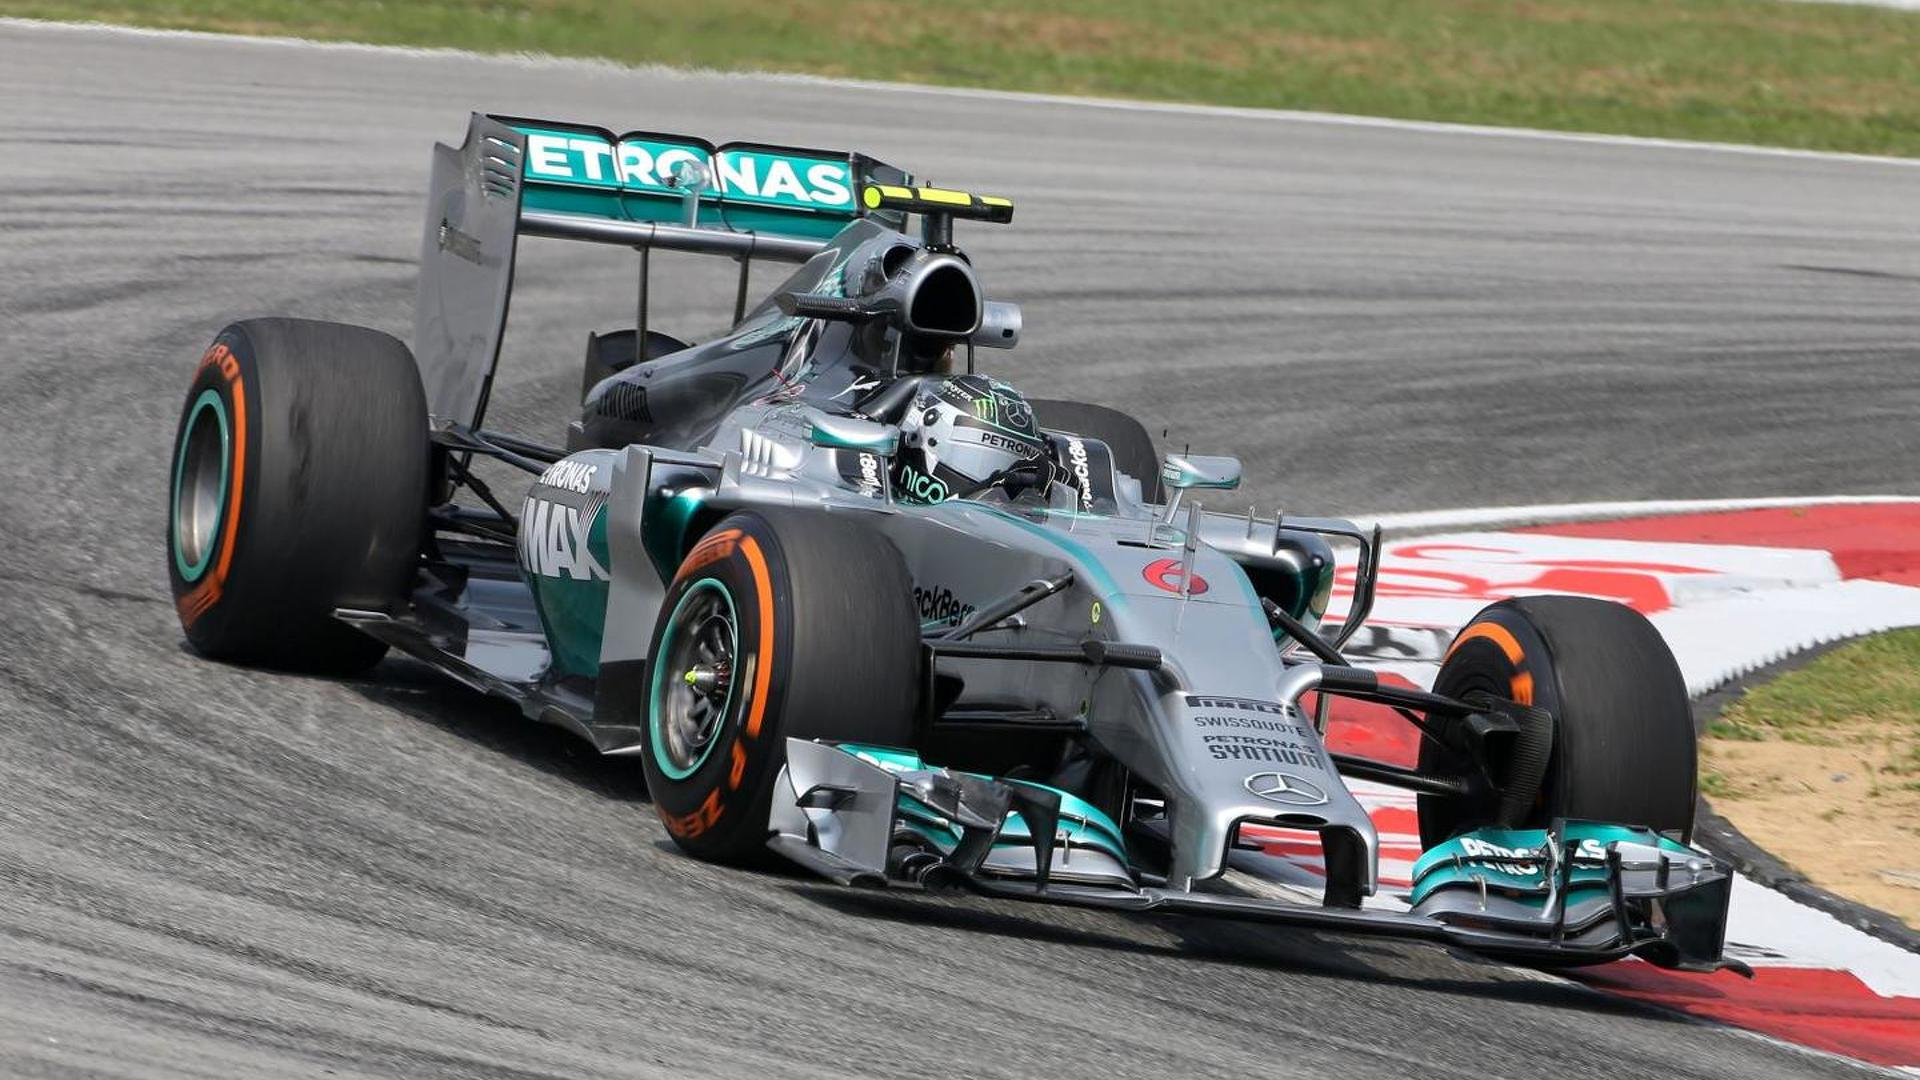 Red Bull, Mercedes spat over Rosberg 'block'